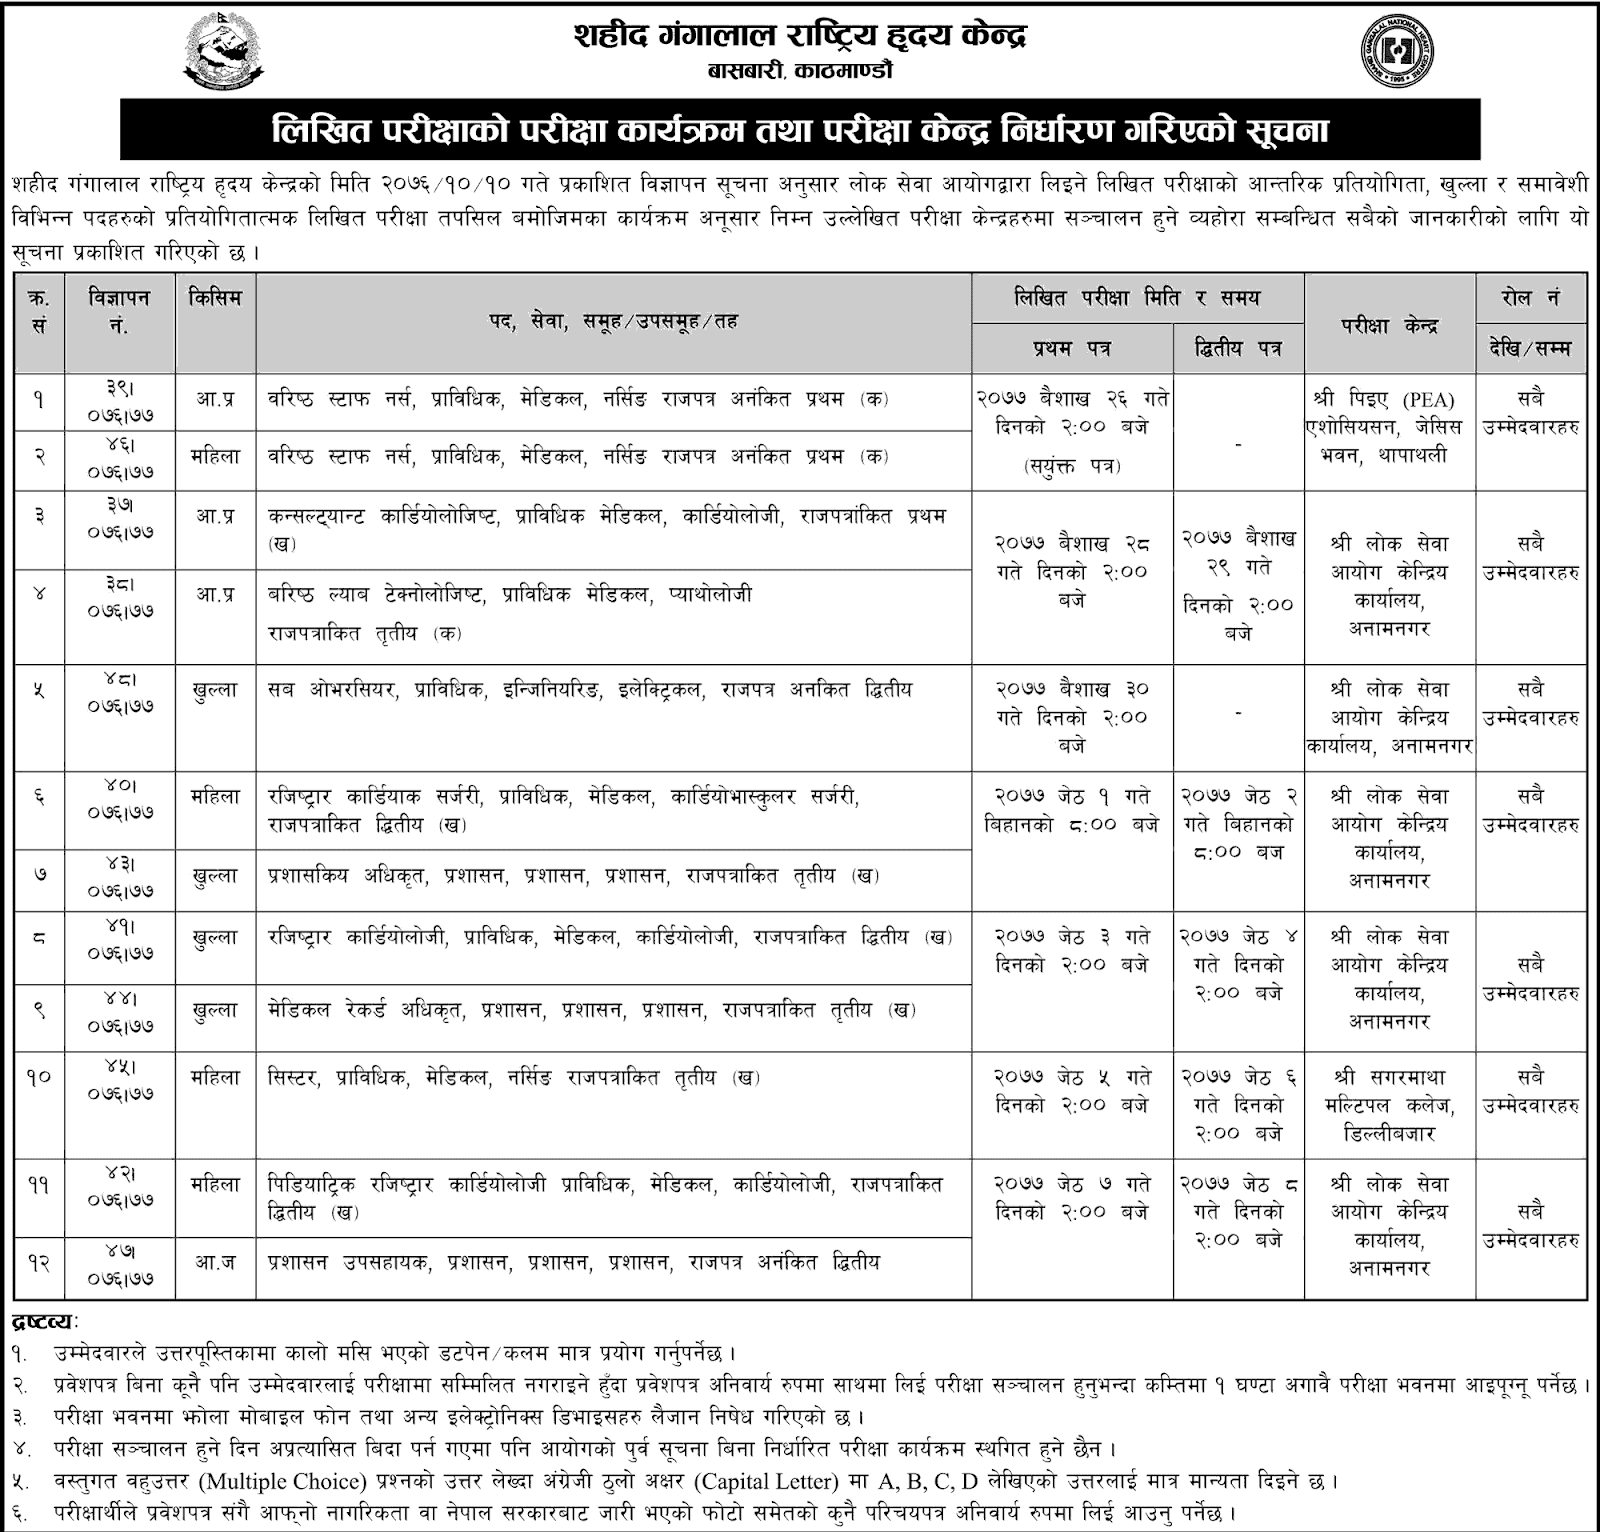 Shahid Gangalal National Heart Center Written Exam Routine and Centers